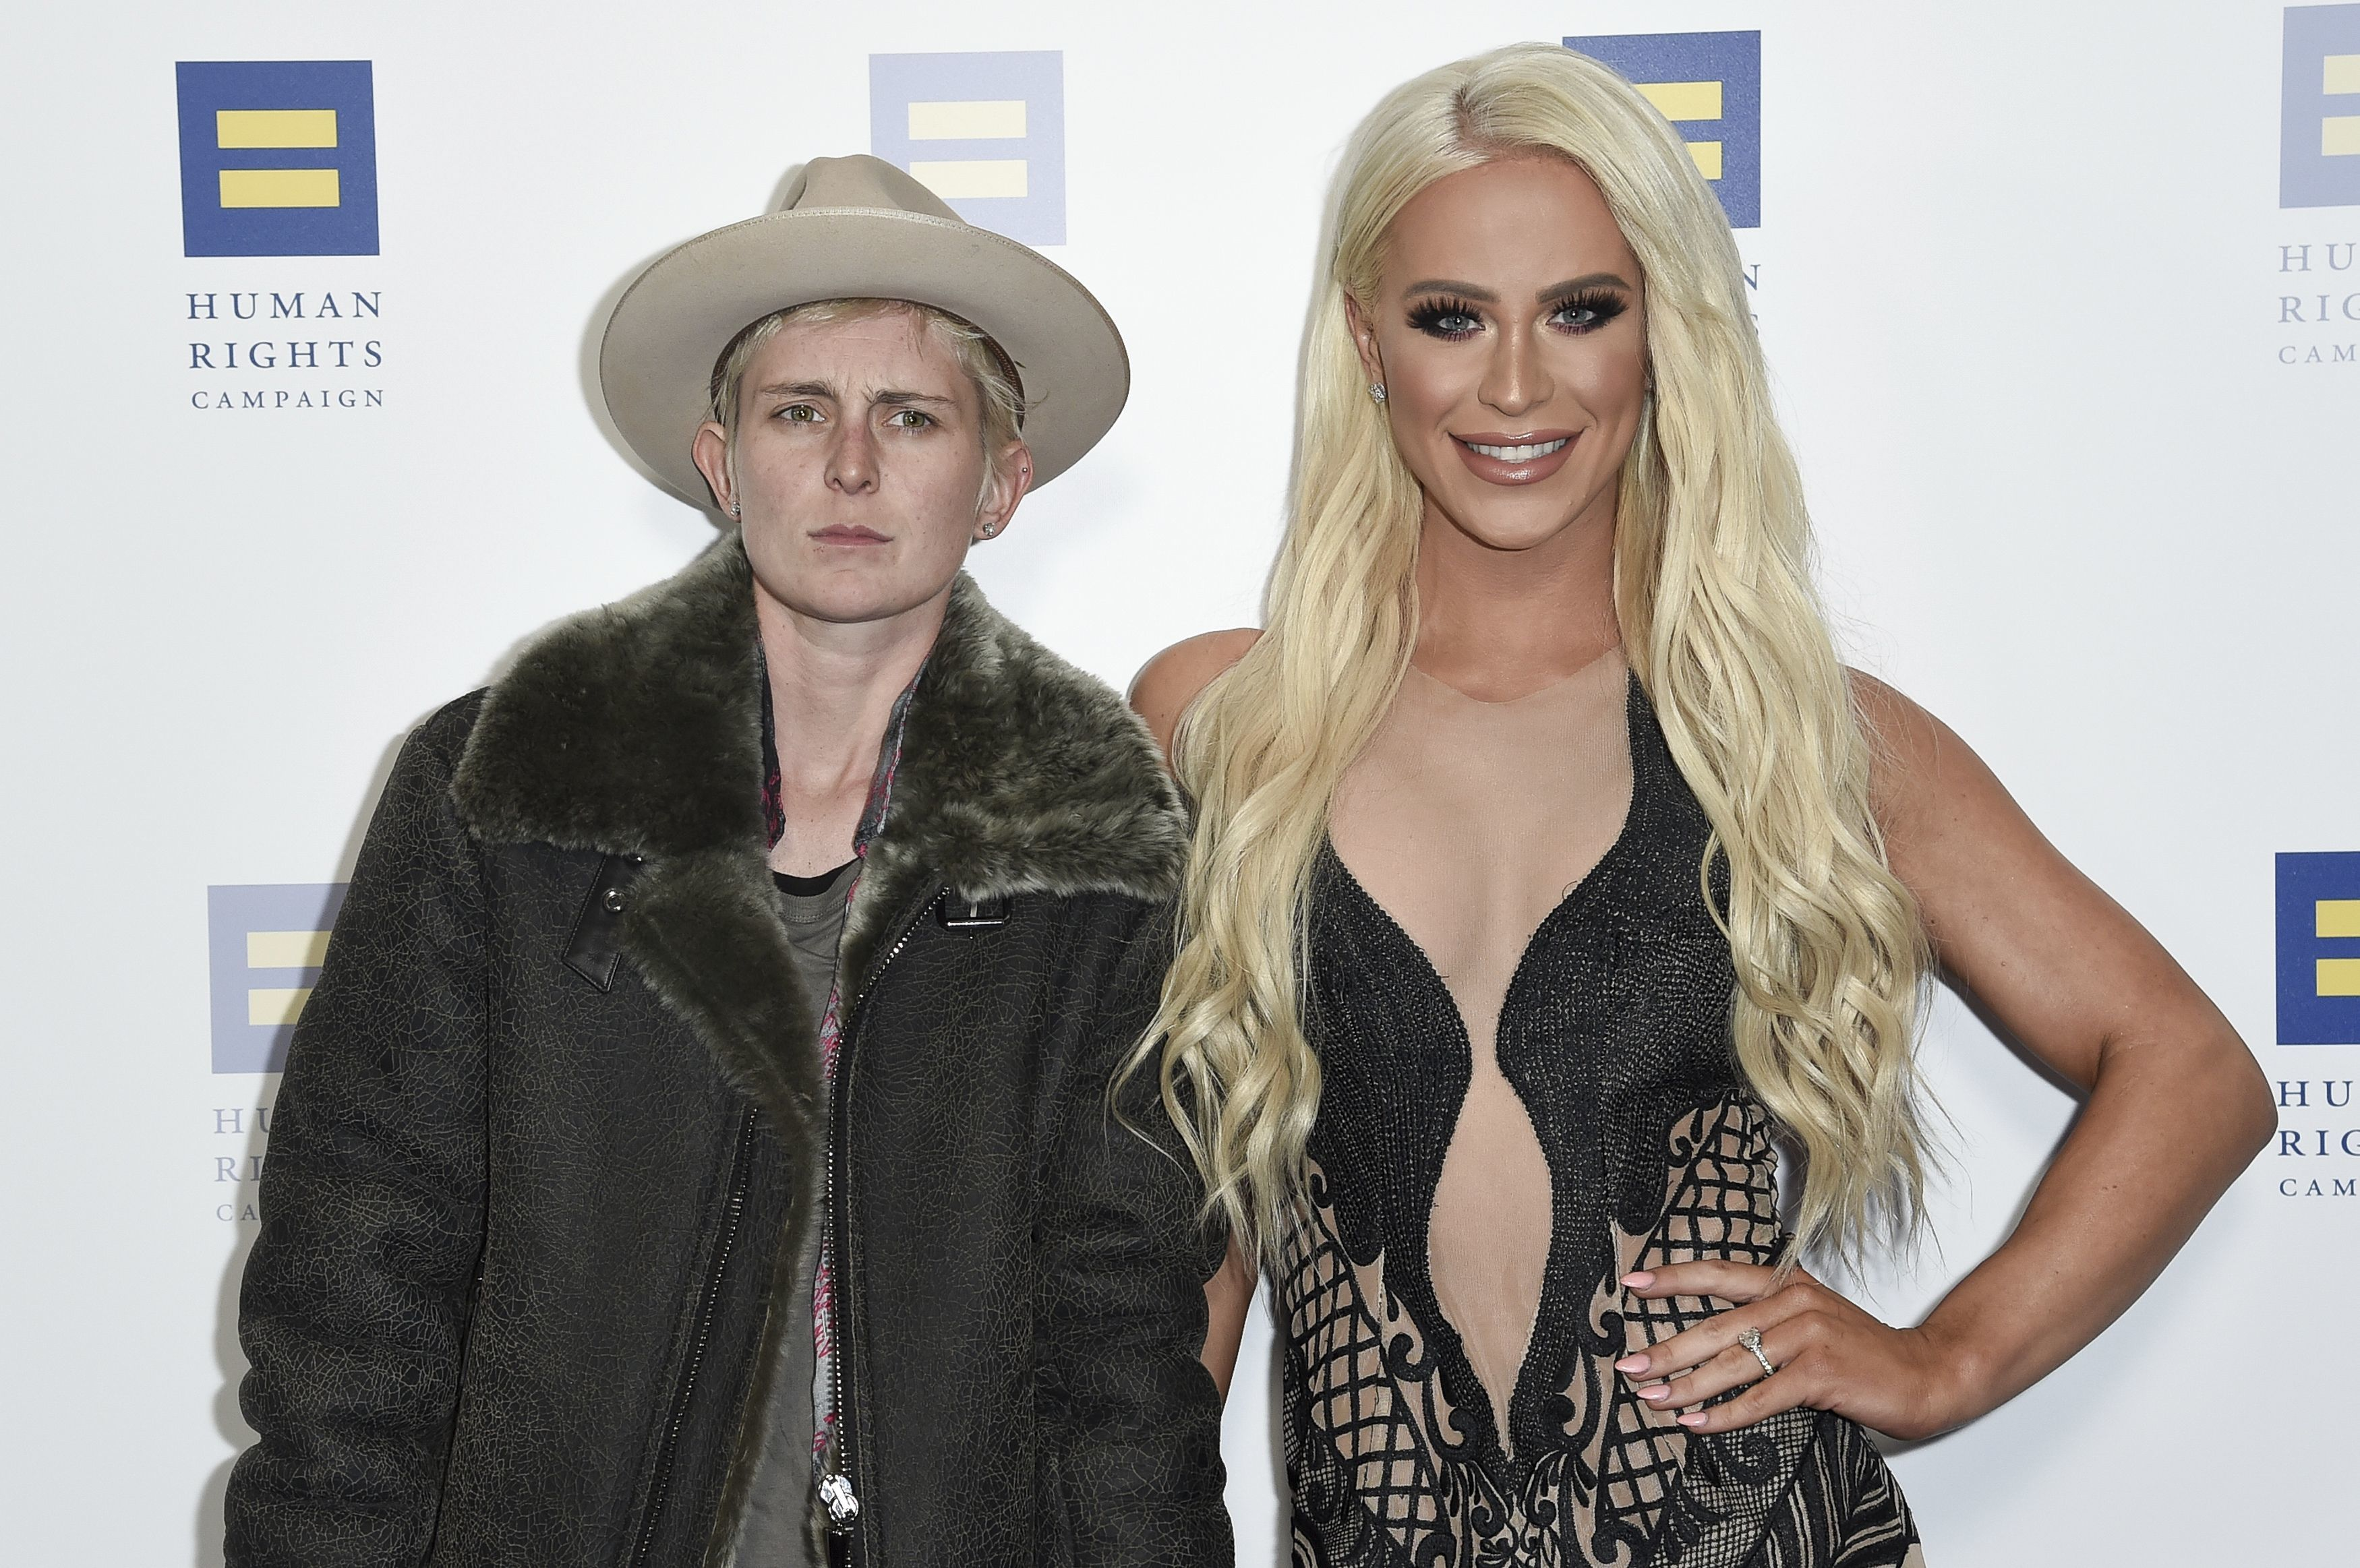 Nats Getty and Gigi Gorgeous attend the Human Rights Campaign Los Angeles Dinner at the JW Marriott L.A. Live on March 10, 2018.